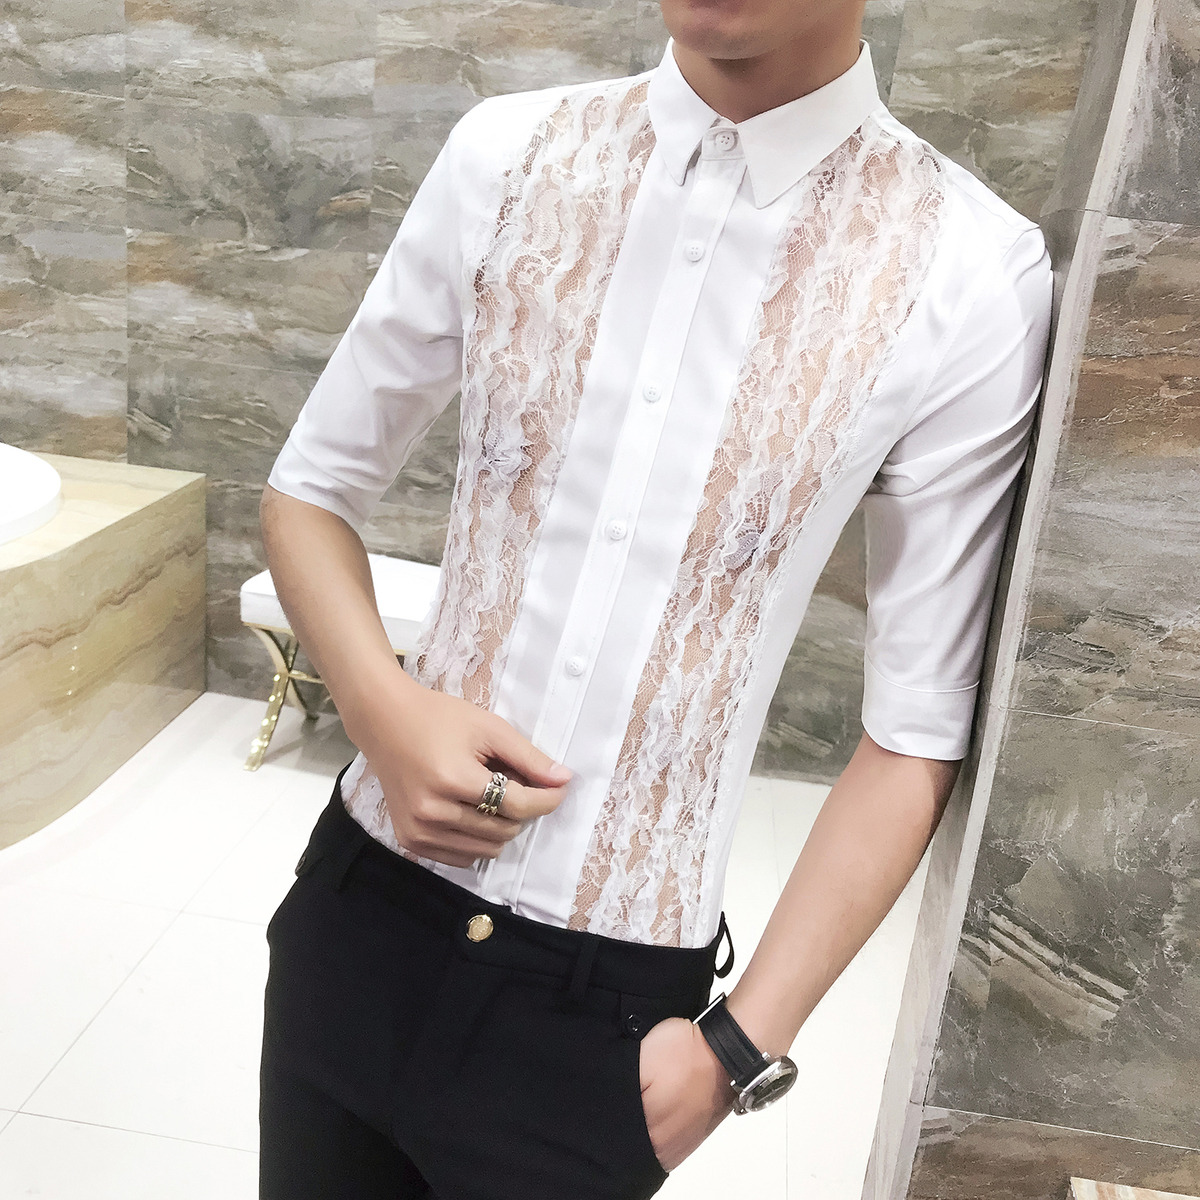 06f9a7c2dff Stripe Transparent Lace Shirt Men 2018 Summer New Designer Shirt Sexy Club  Party Wedding Shirt Fashion Slim Fit Chemise Homme -in Dress Shirts from  Men s ...